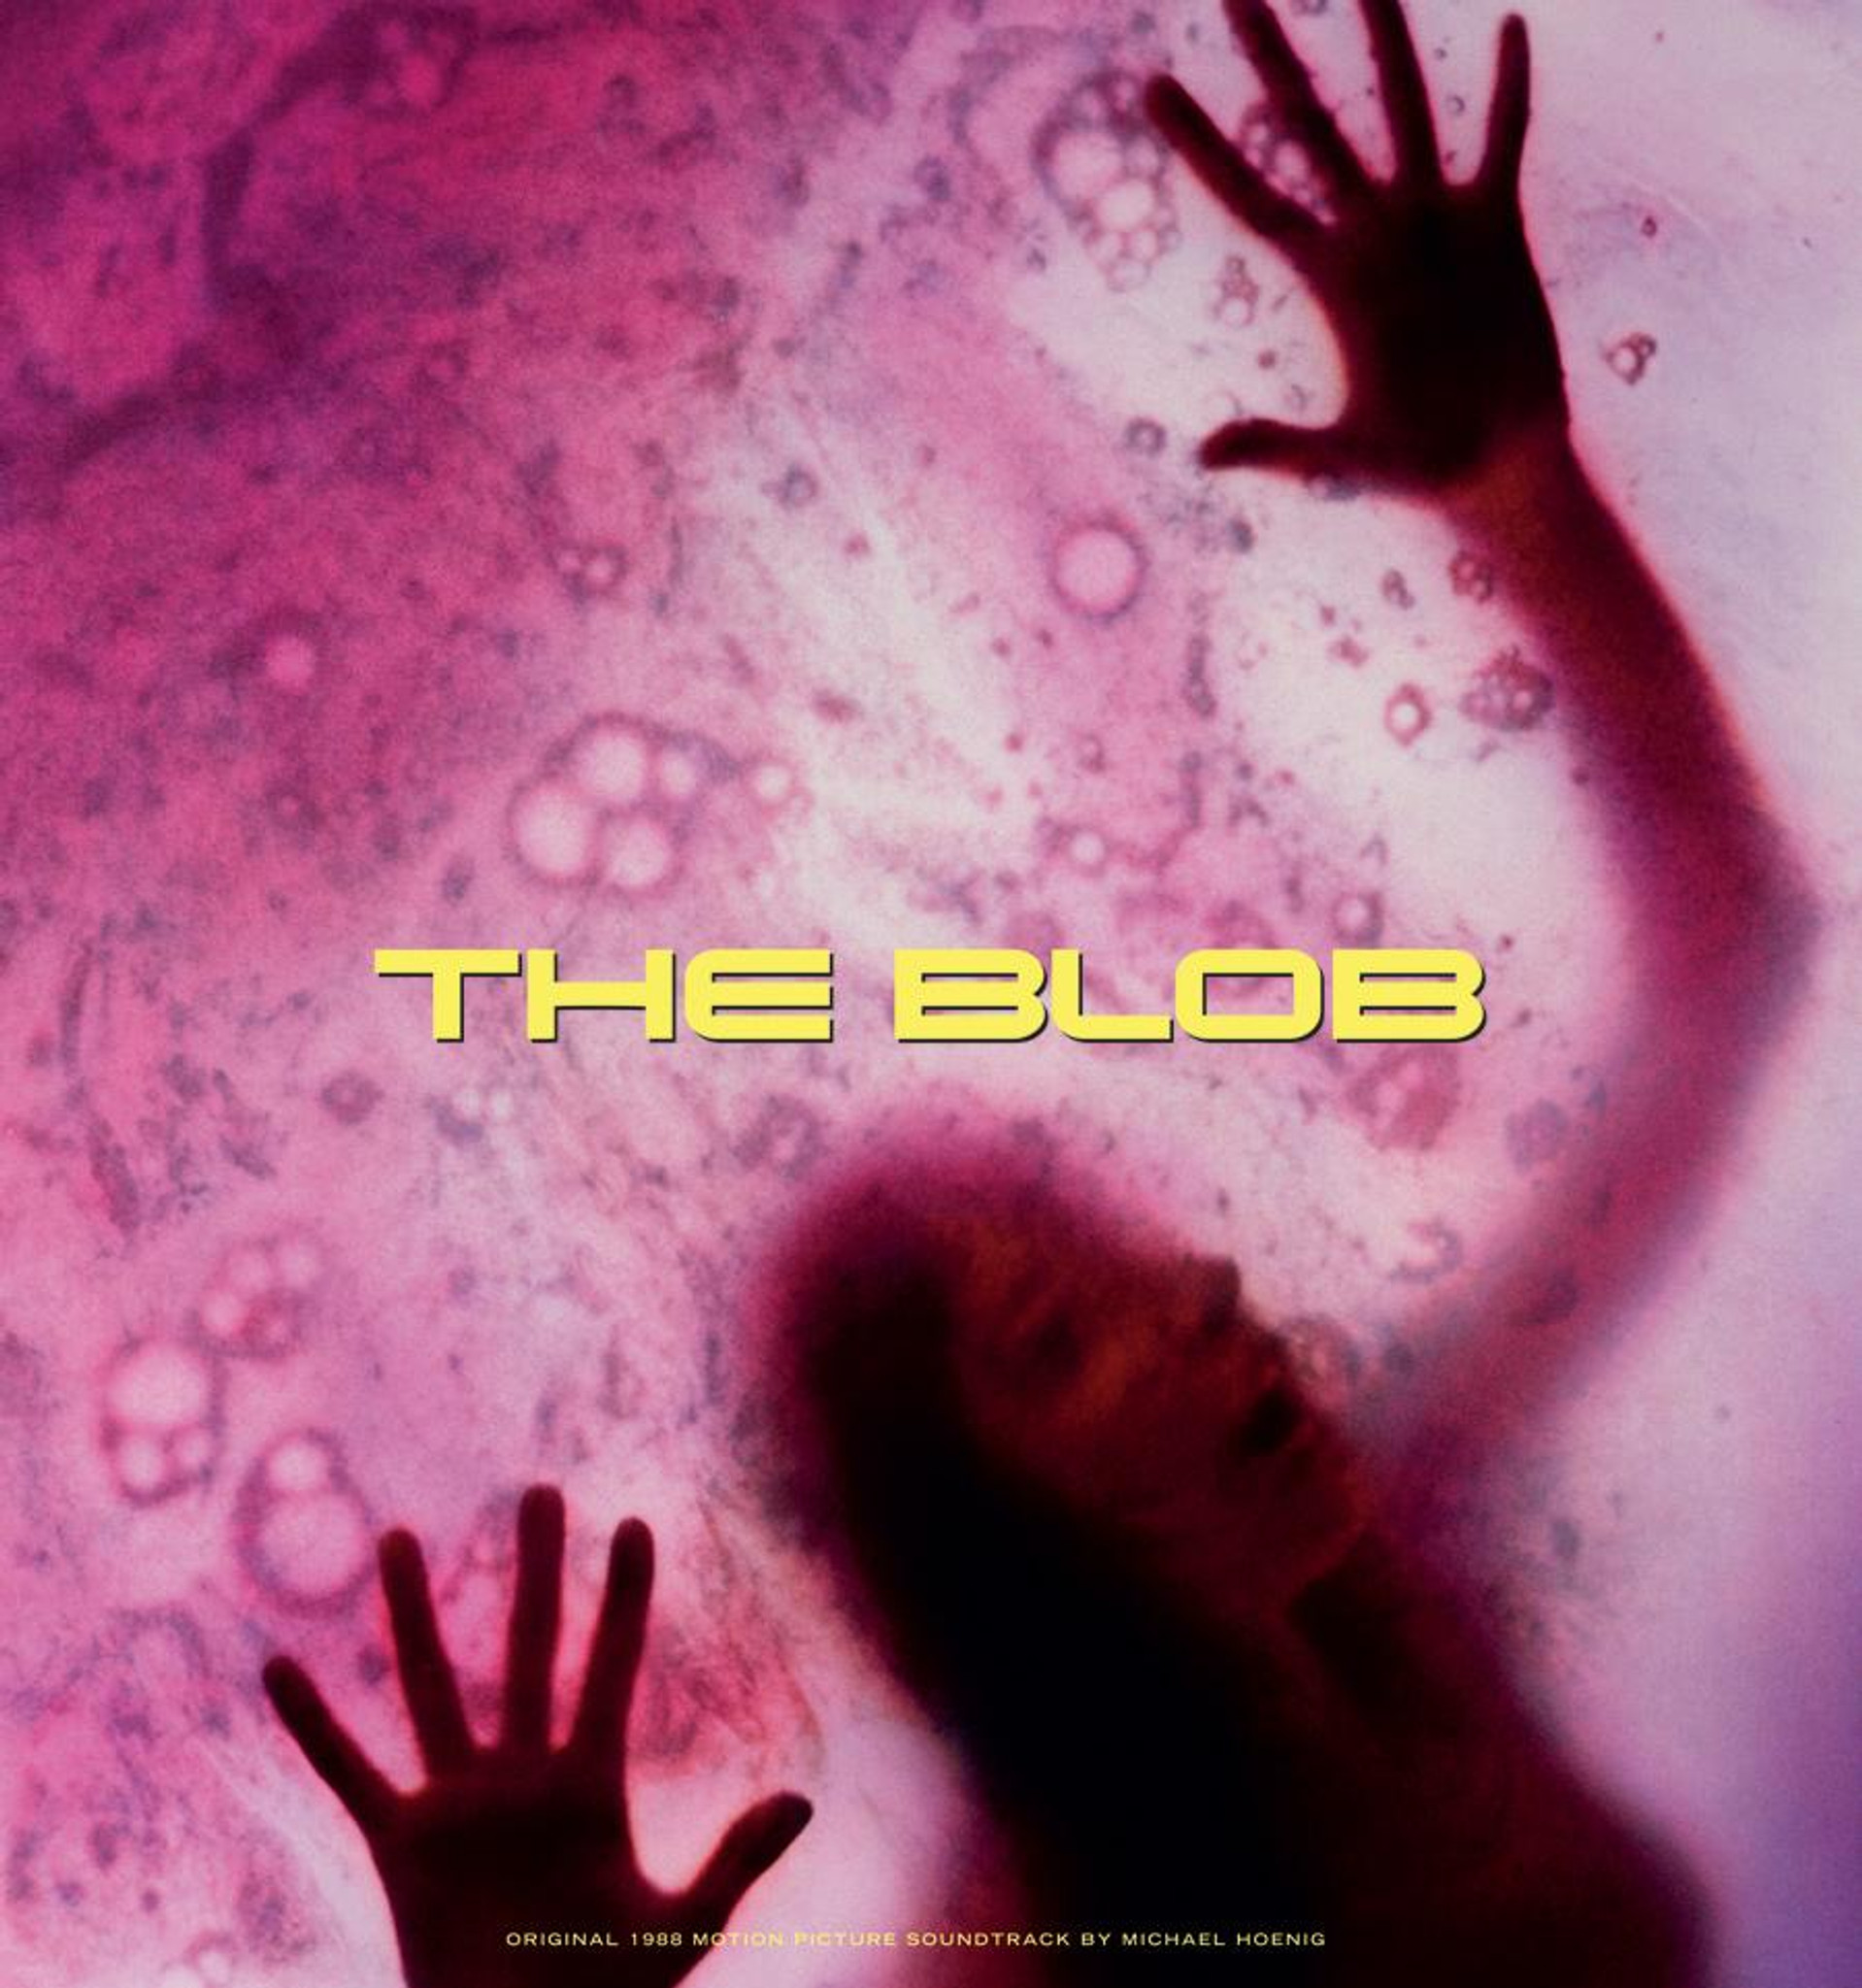 MICHAEL HOENIG: The Blob (Original 1988 Motion Picture Soundtrack